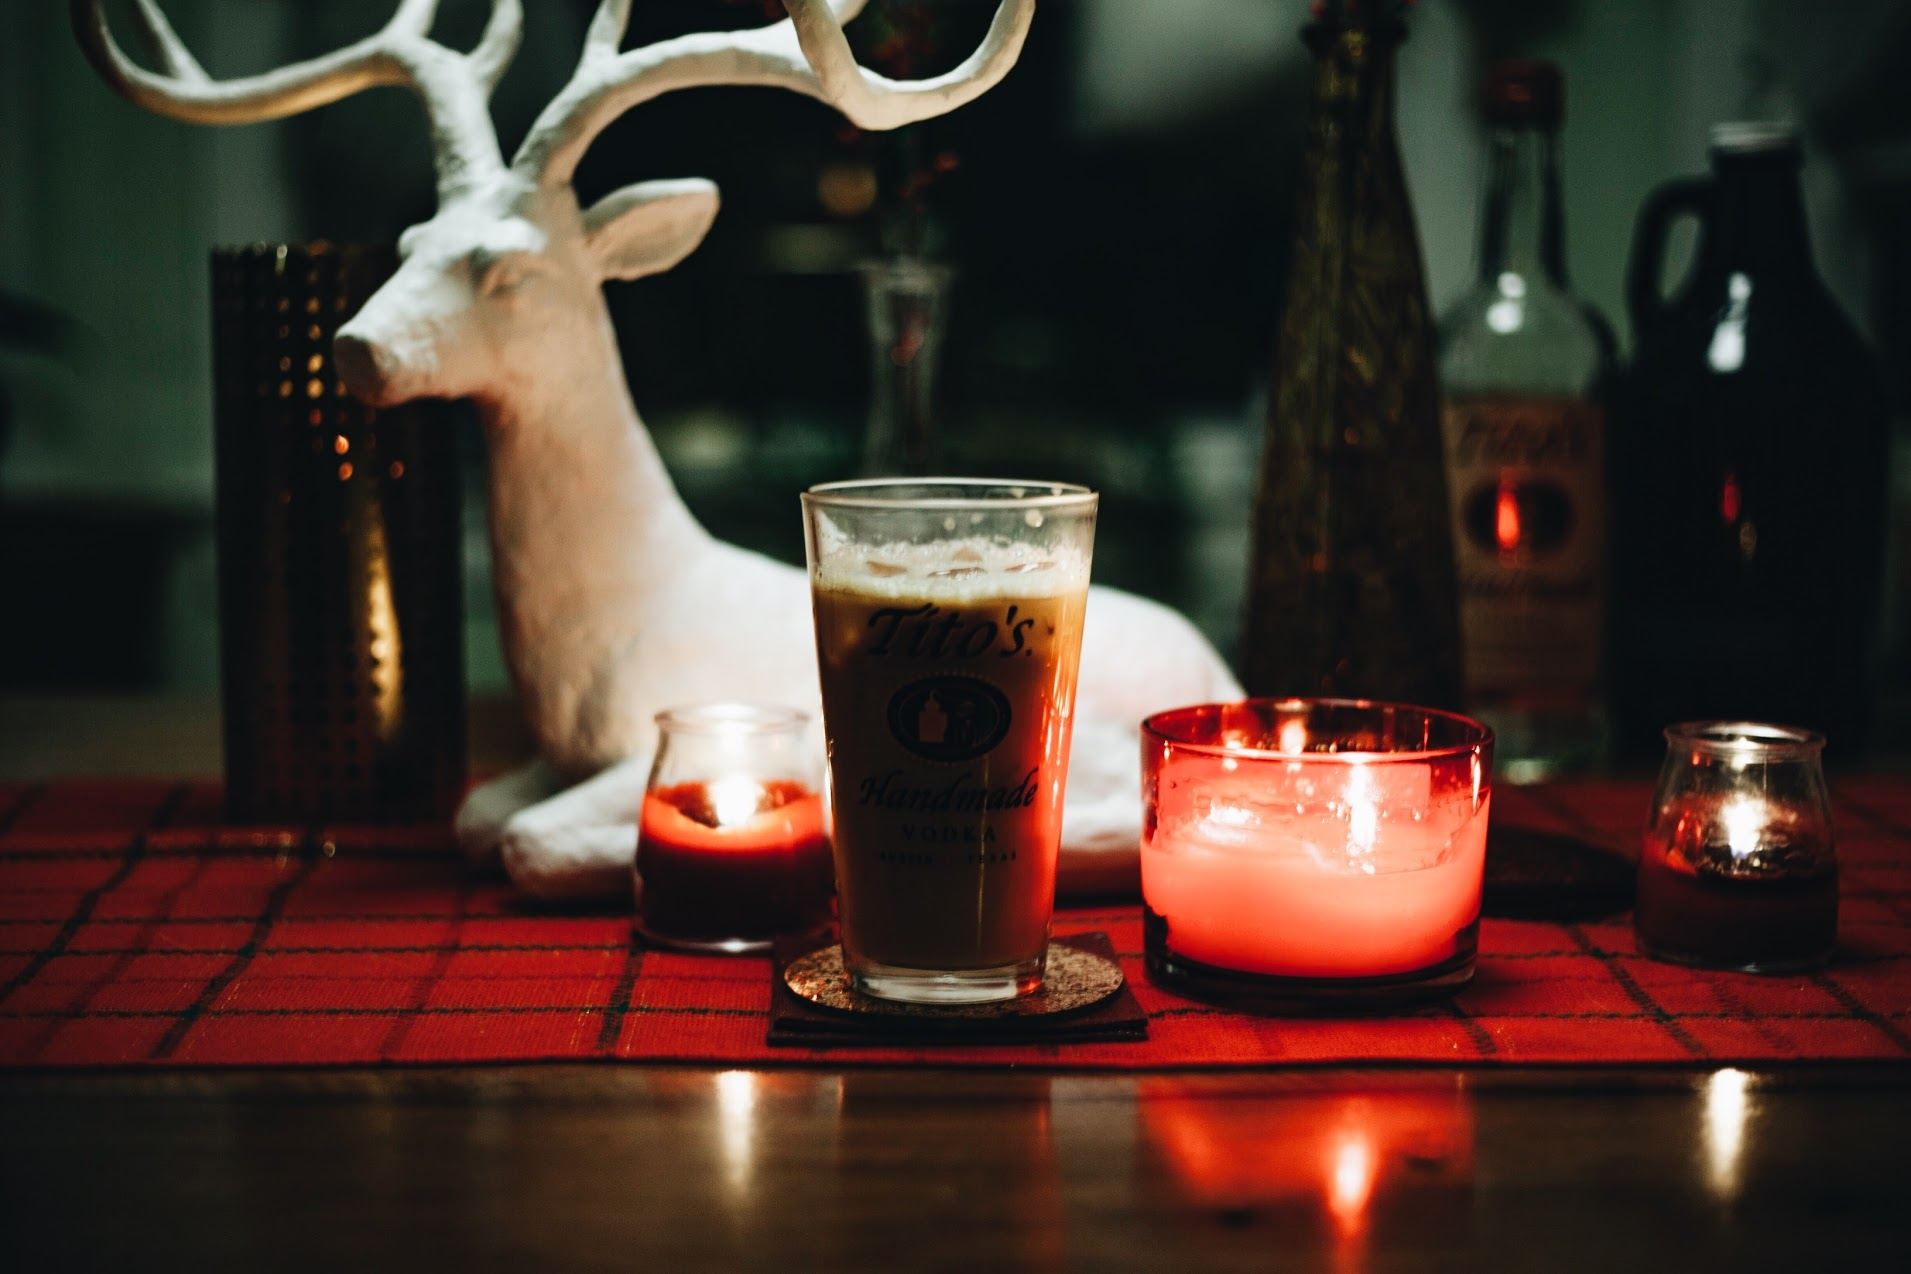 Tito's Iced Coffee White Russian - 2 oz. Tito's Handmade Vodka1 oz whole milk or heavy cream1 oz Thou Mayest Iced Coffee concentrate (fully mixed)Ice